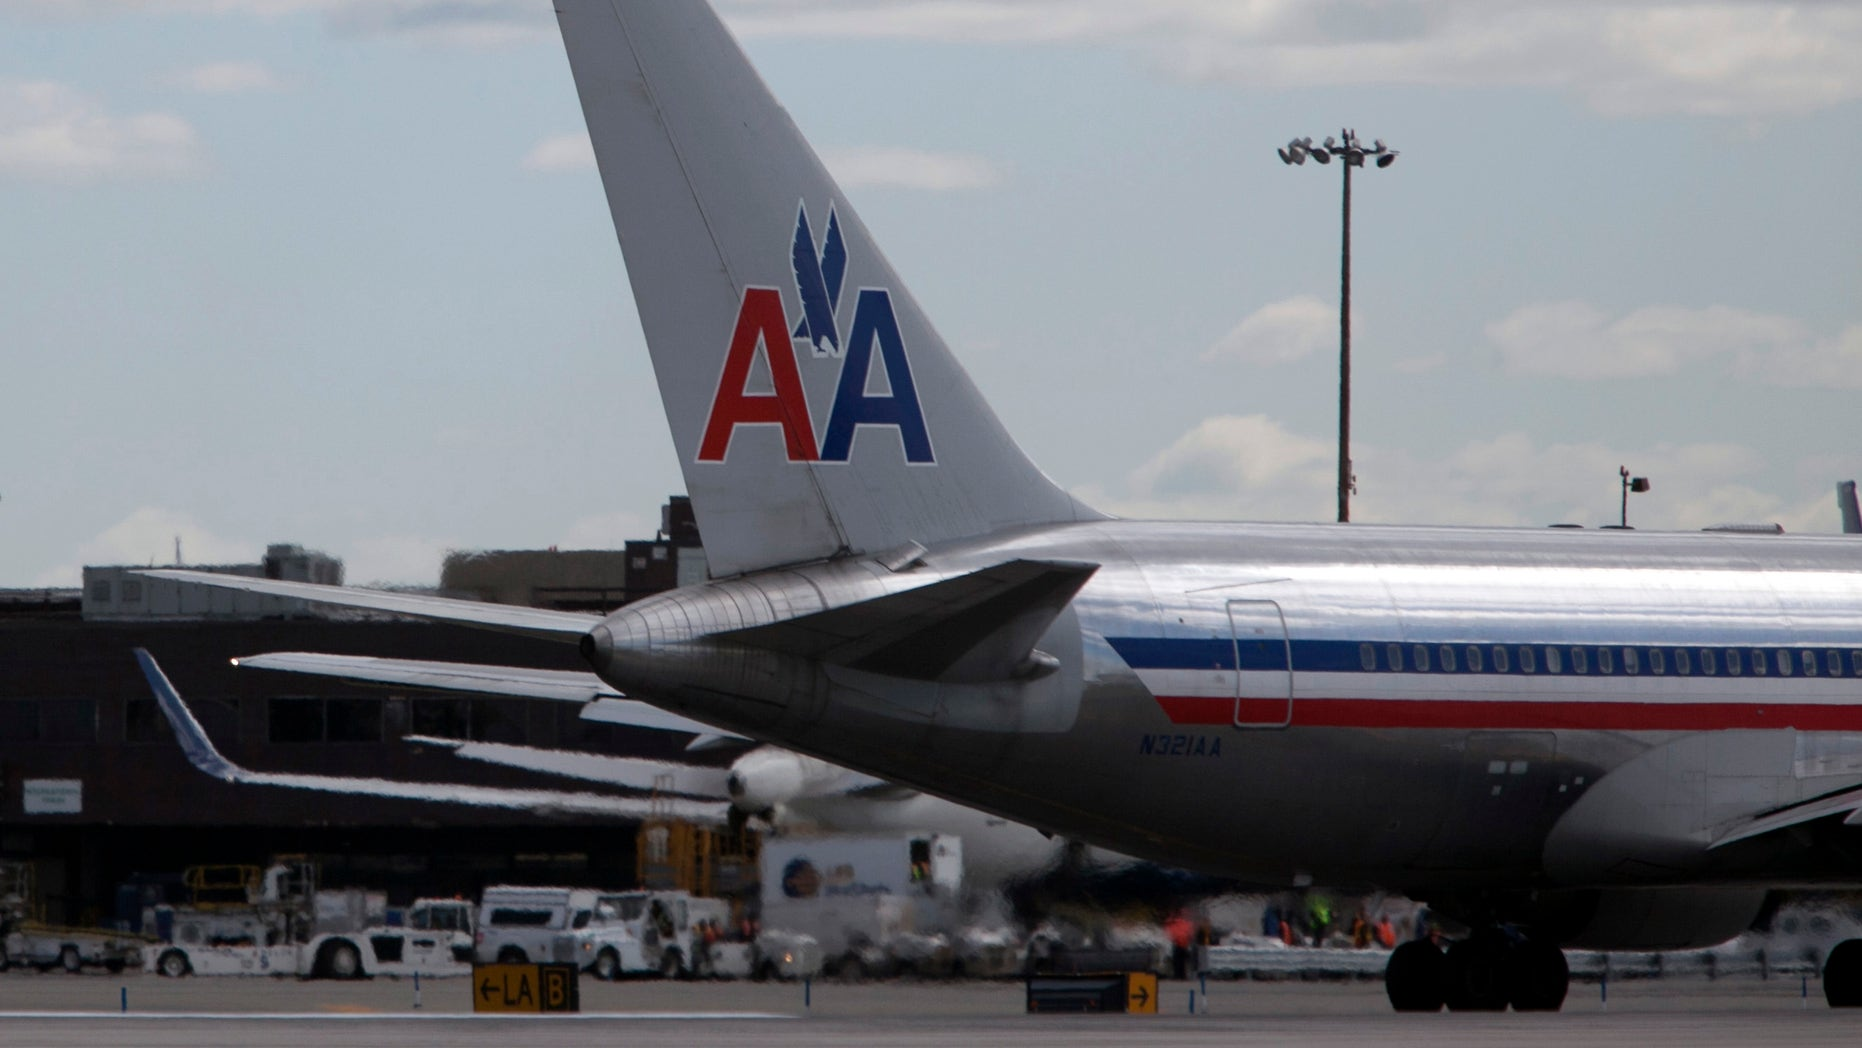 NEW YORK, NY - APRIL 27: An American Airlines plane is seen at John F. Kennedy International Airport April 27, 2012 in the Queens borough of New York City.  (Photo by Allison Joyce/Getty Images)